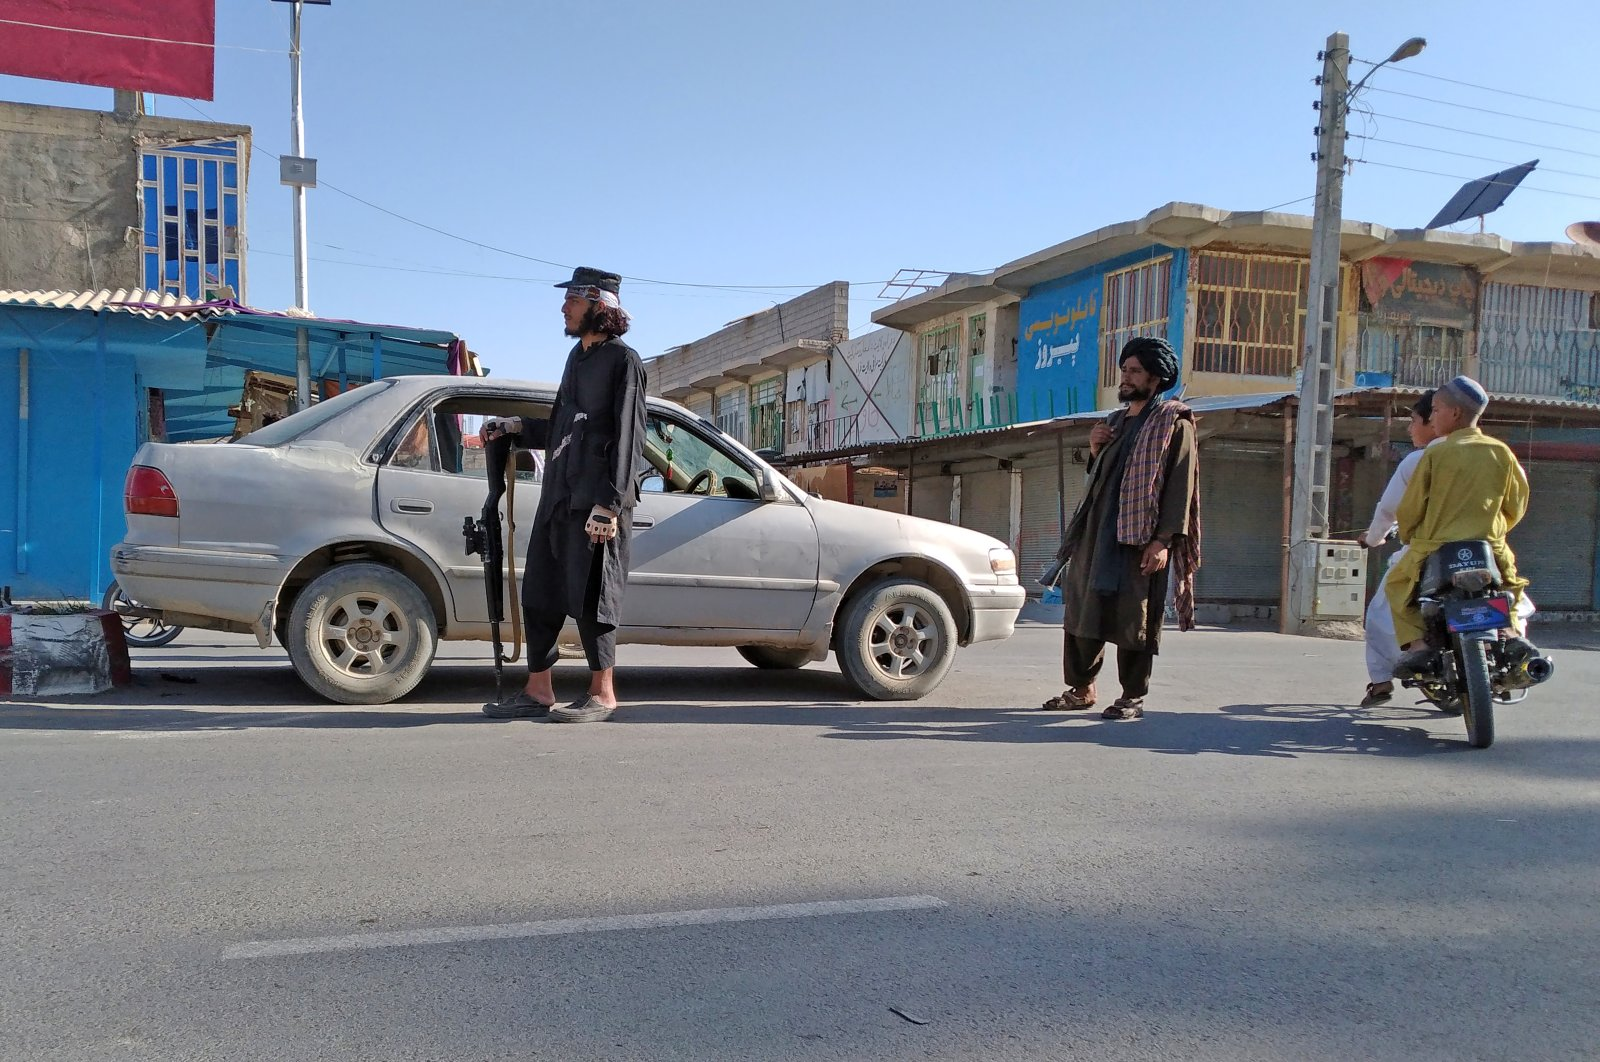 Taliban fighters stand guard at a checkpoint inside the city of Farah, capital of Farah province southwest of Kabul, Afghanistan, Aug. 11, 2021. (AP Photo)